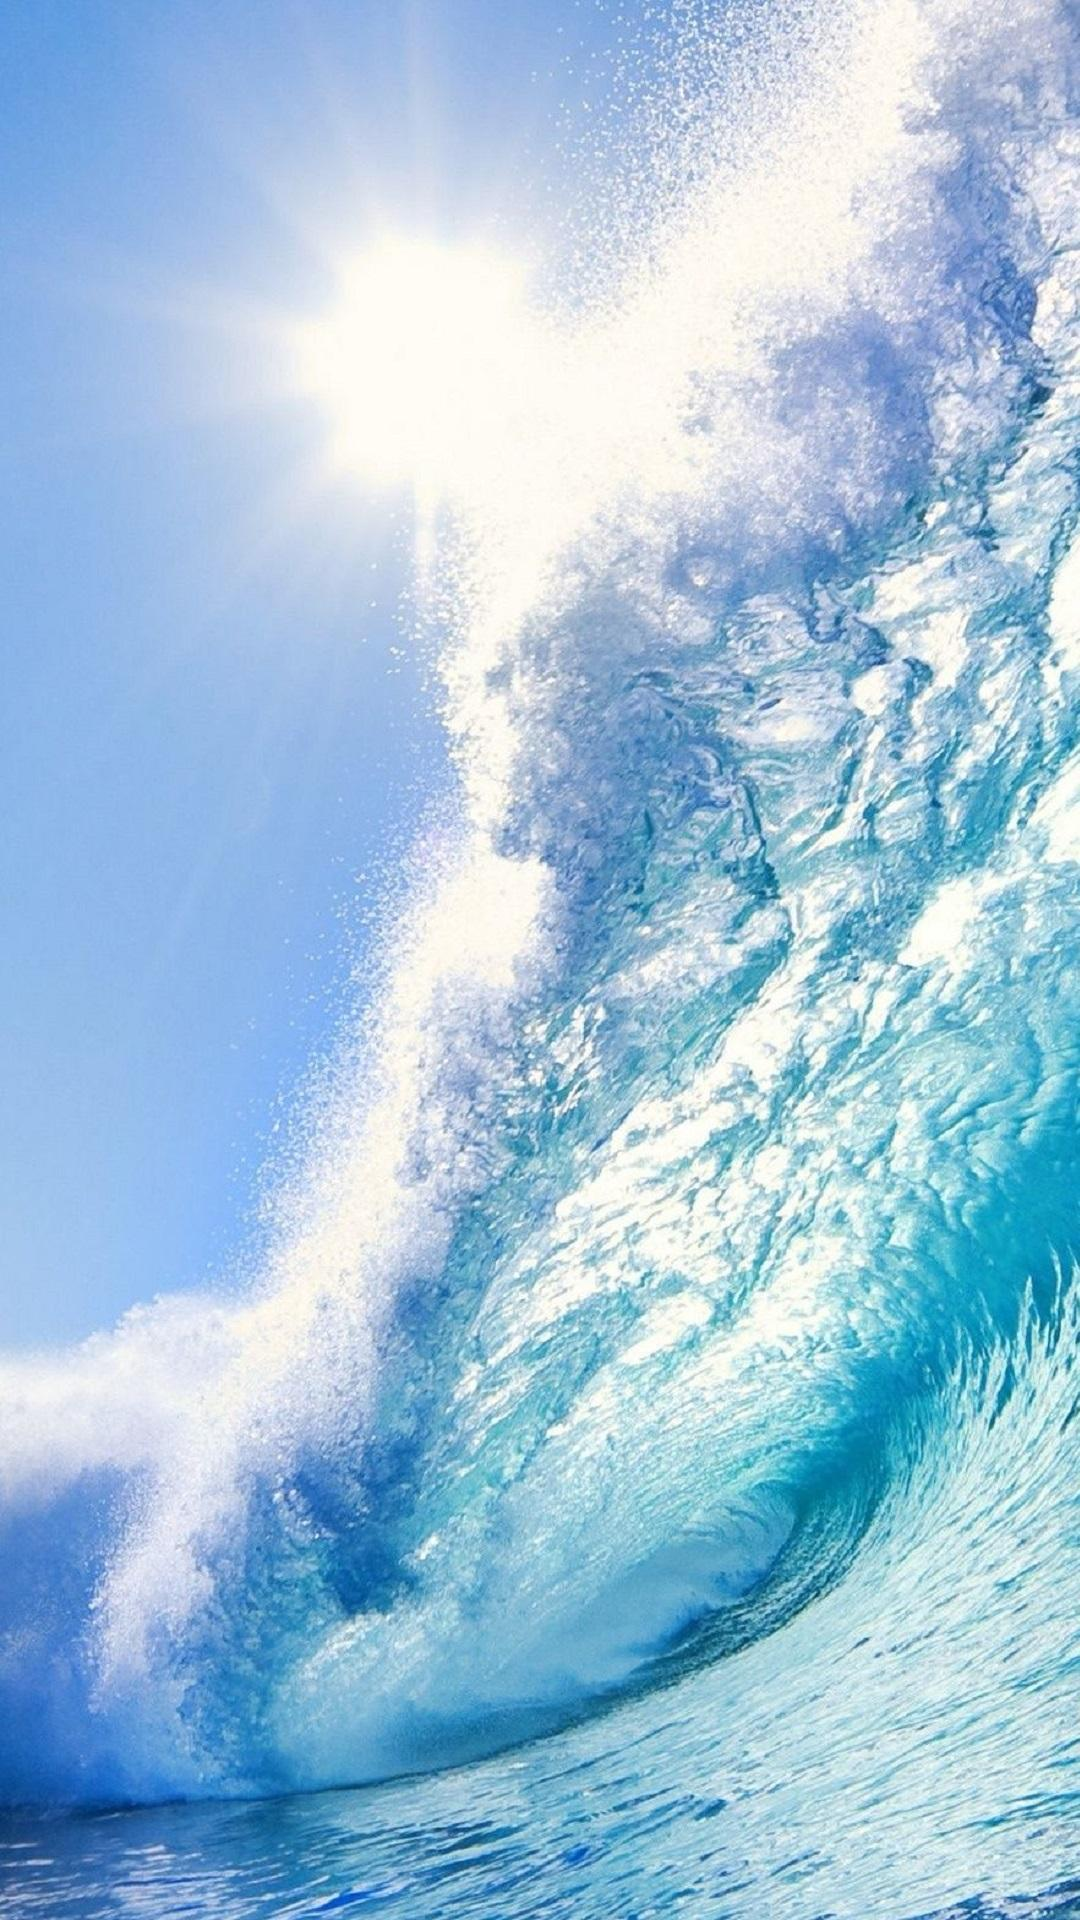 Sea Waves Wallpapers Hd For Android Apk Download